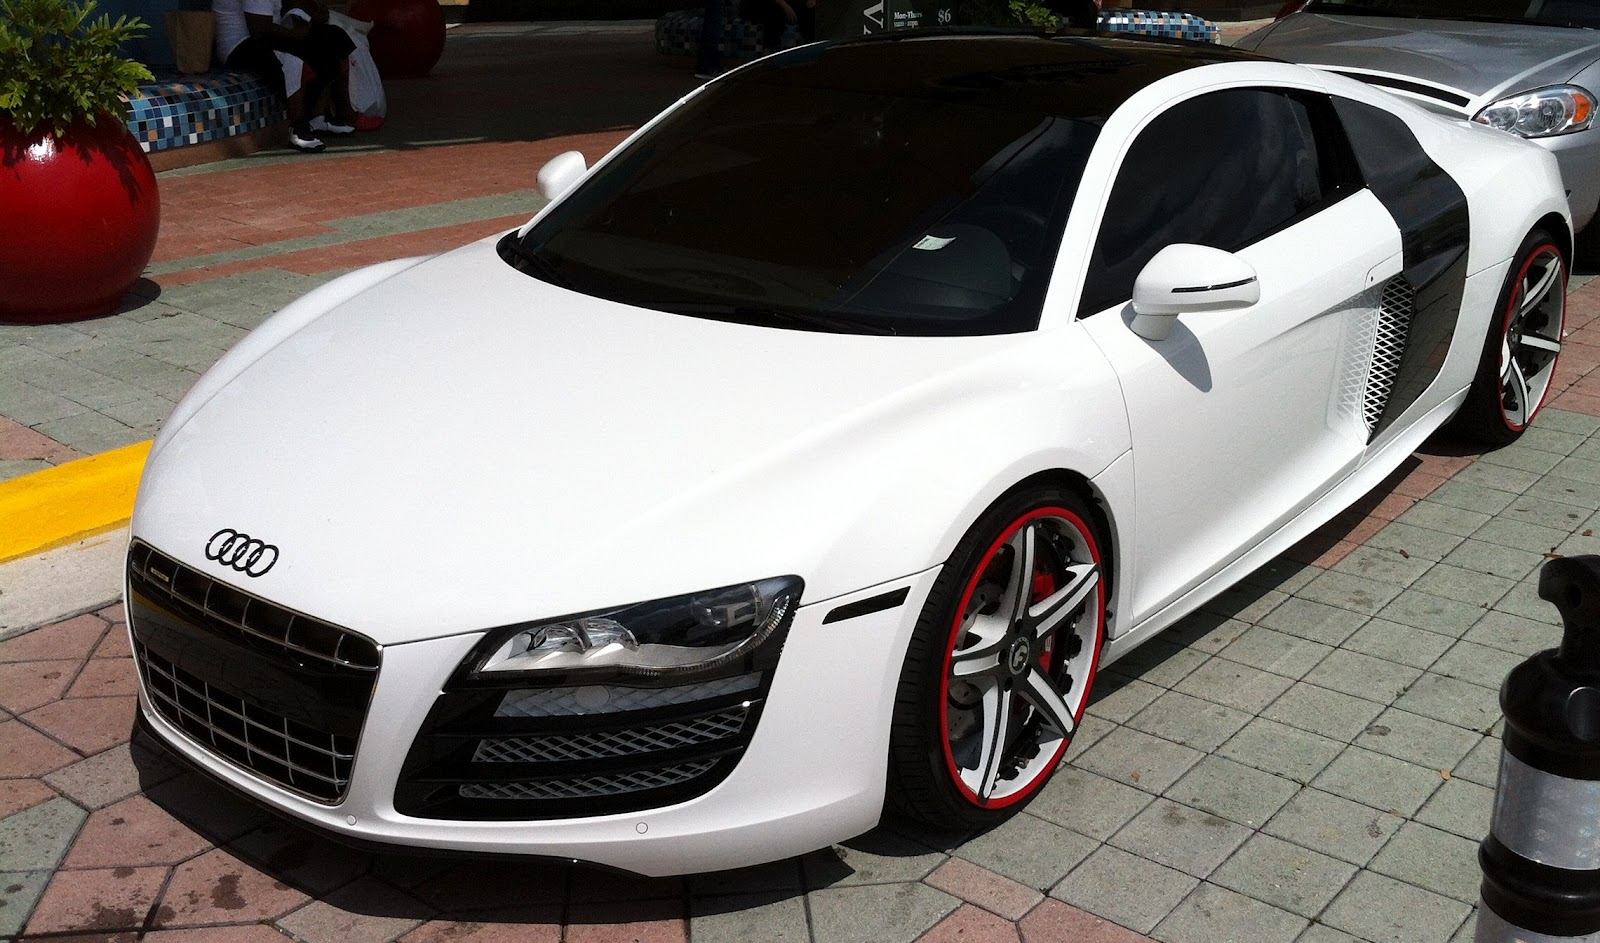 White 2012 Audi R8 / Custom Rims | Exotic Cars on the Streets of Miami